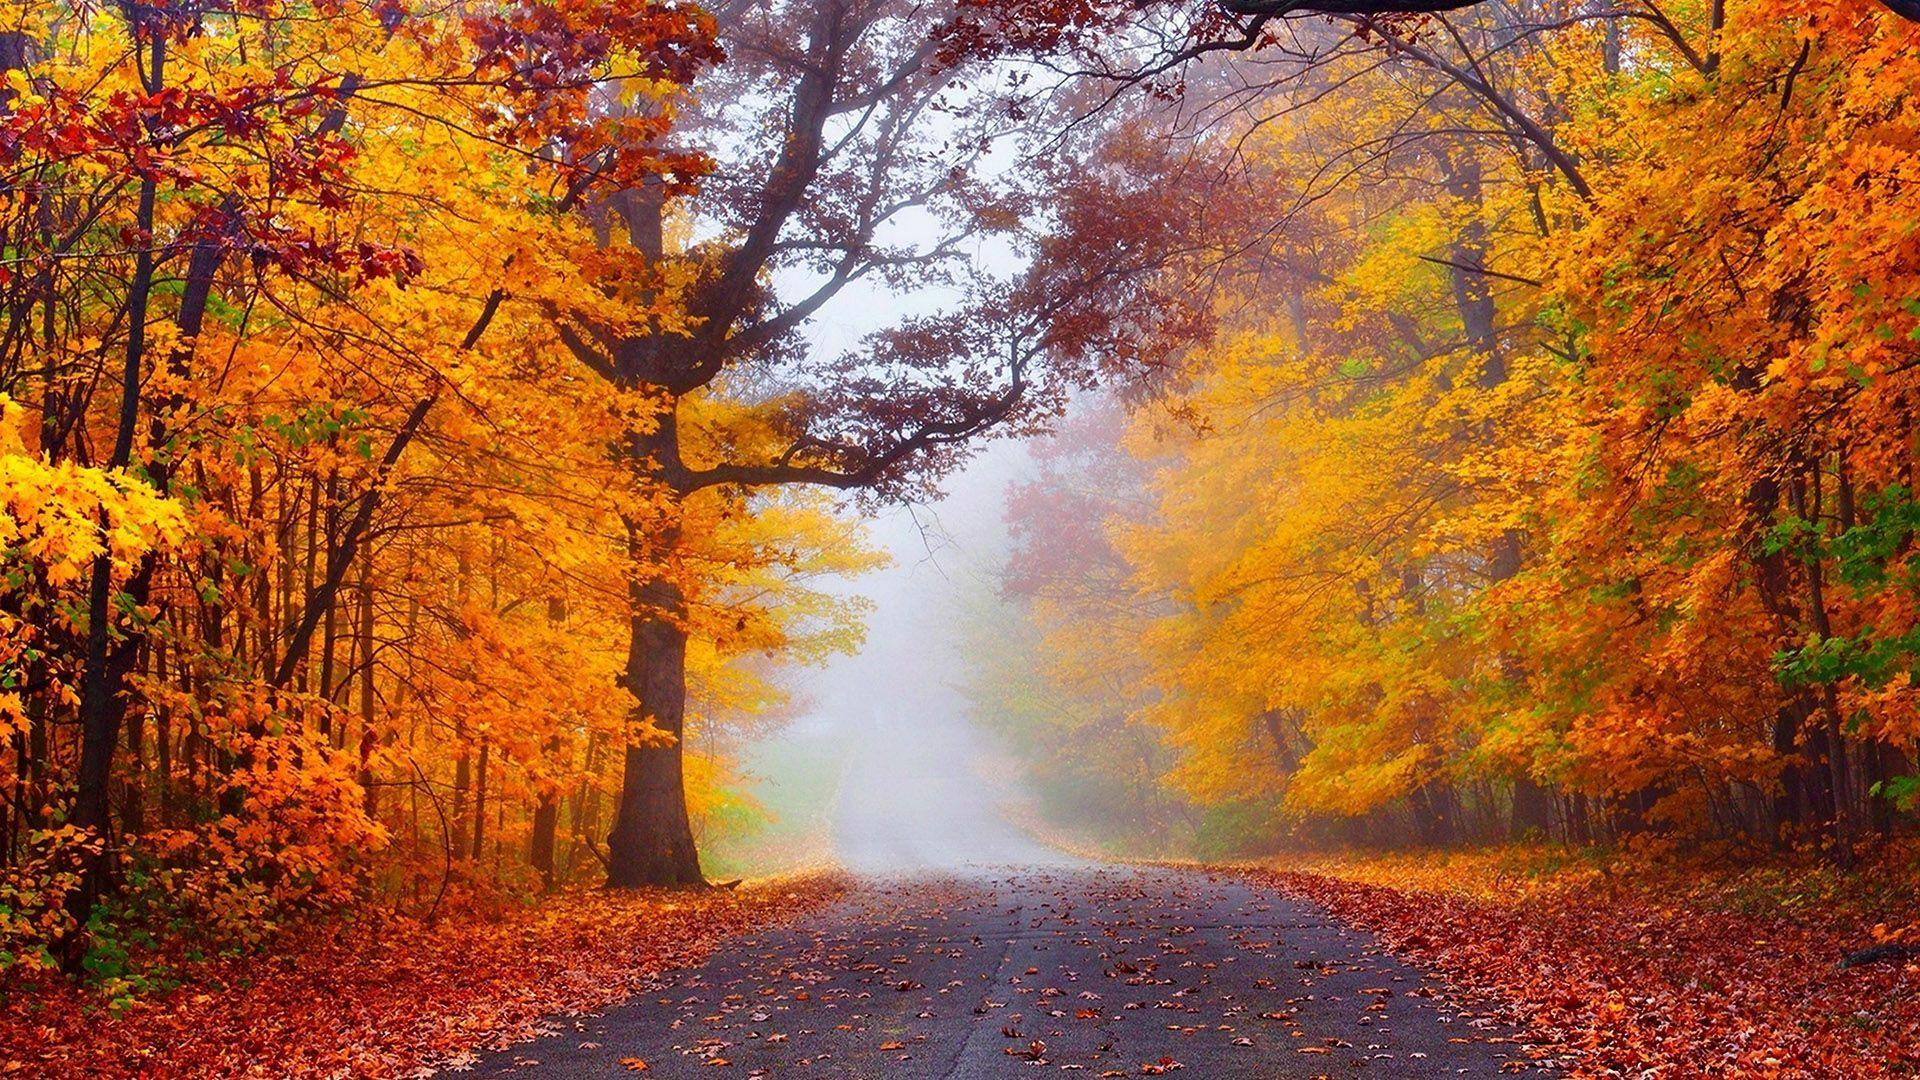 Happy New Year 2016 3d Wallpaper For Pc Hd Fog In The Autumn Forest Wallpaper Download Free 149965